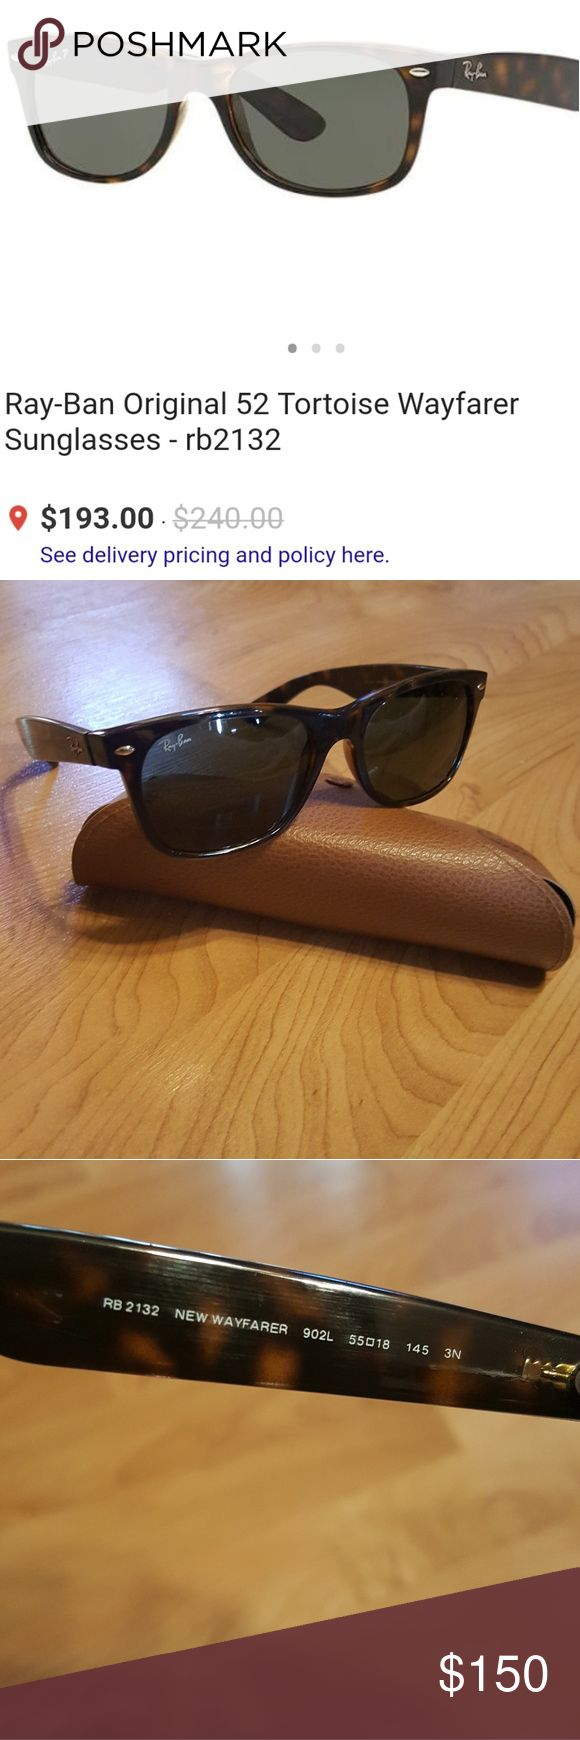 Ray-ban classic wayfarer sunglasses 8411 Excellent condition. Style 2132. Tortoise shell. I wore these for maybe 2 weeks before I ended up buying a different style so they are in very good condition. Comes with case in photo. Ray-Ban Accessories Sunglasses